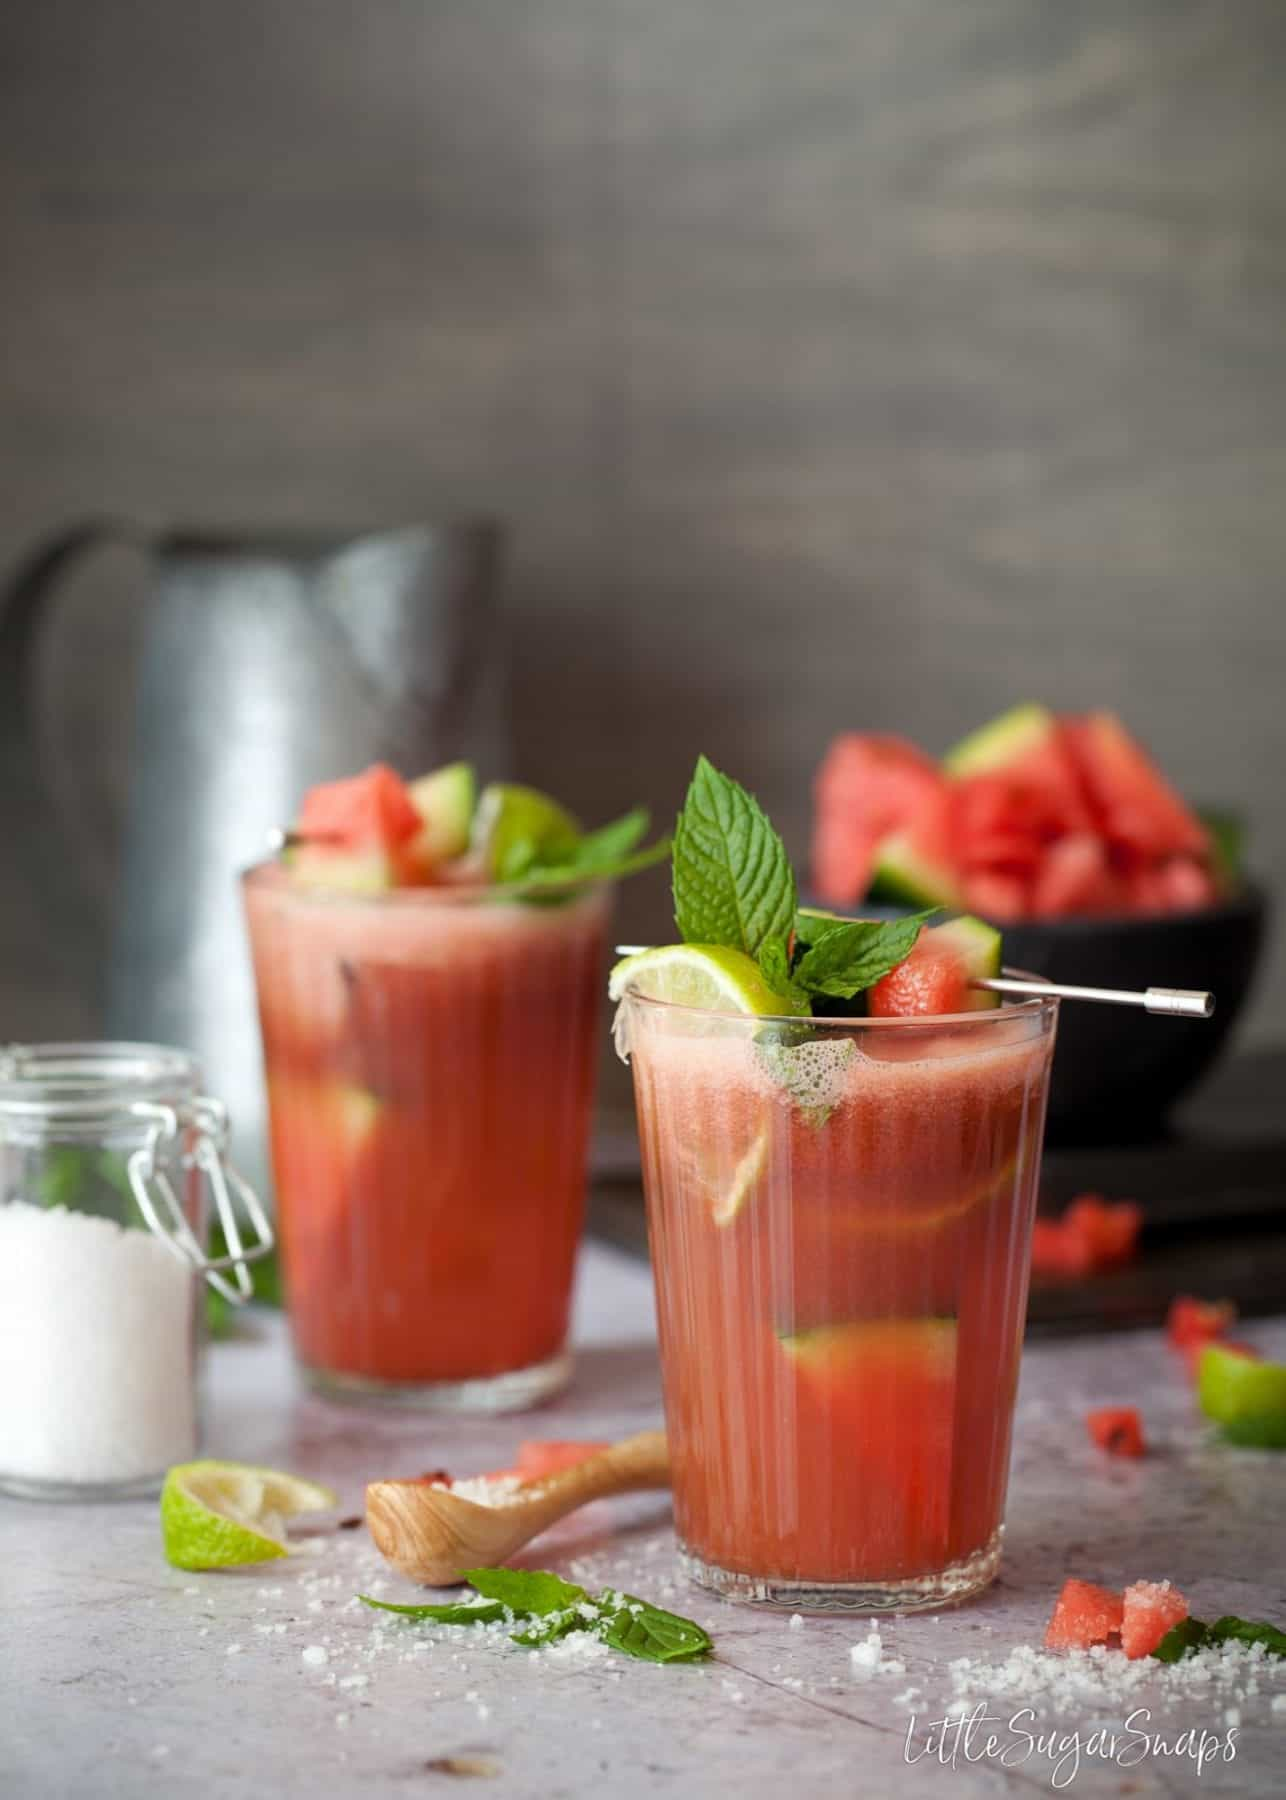 Two glasses of watermelon juice garnished with lime, mint and fruit.